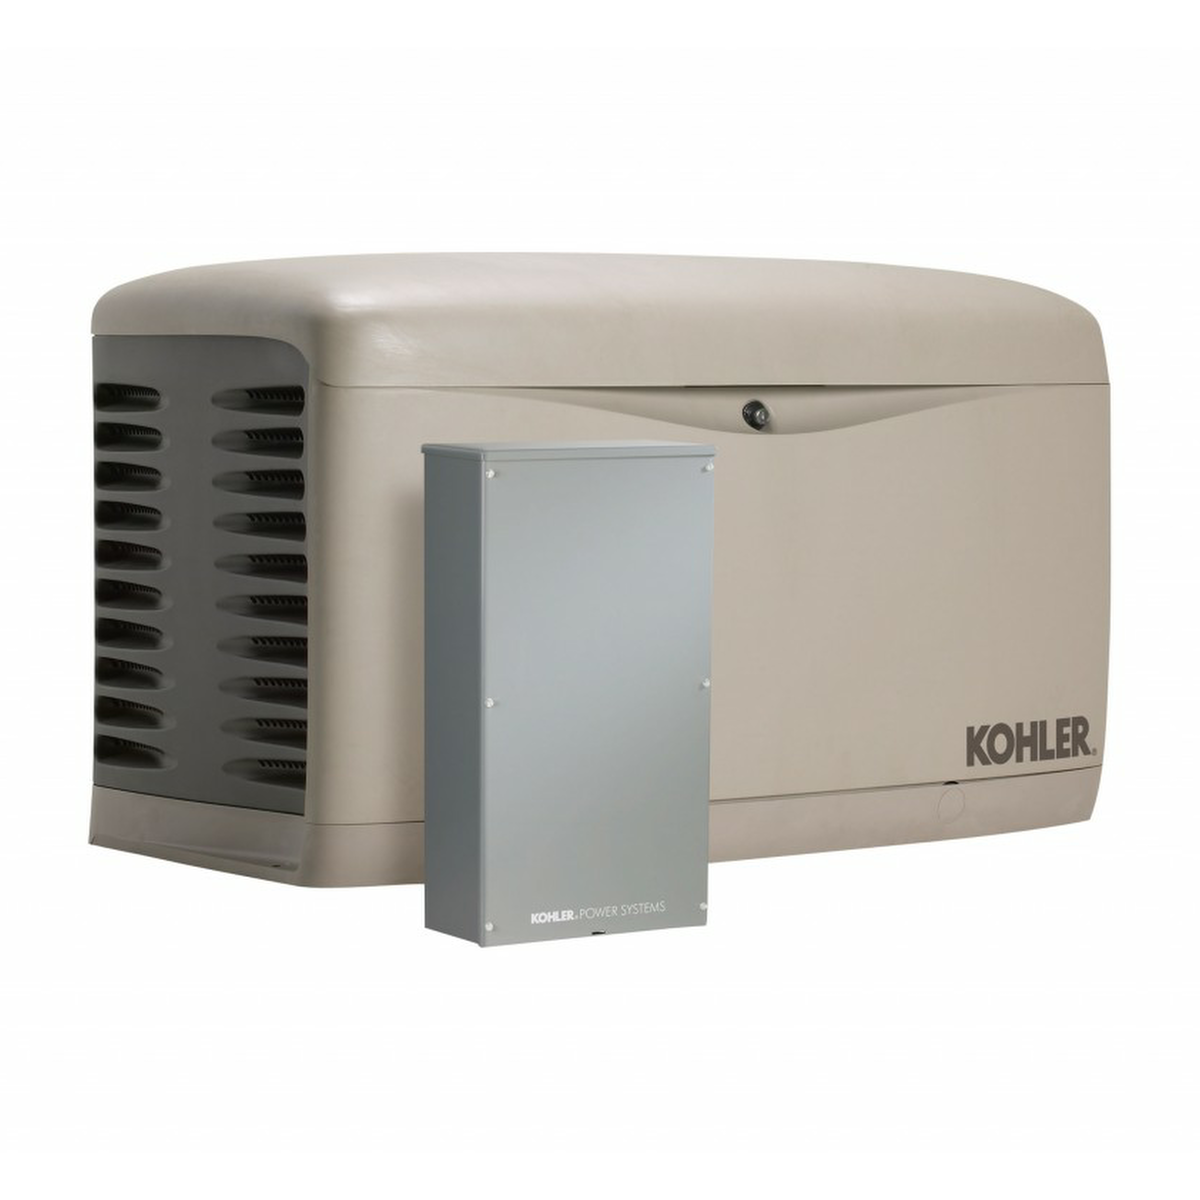 Kohler 20RESAL 100LC16 20kW Generator With 100A 16 Circuit Transfer Switch